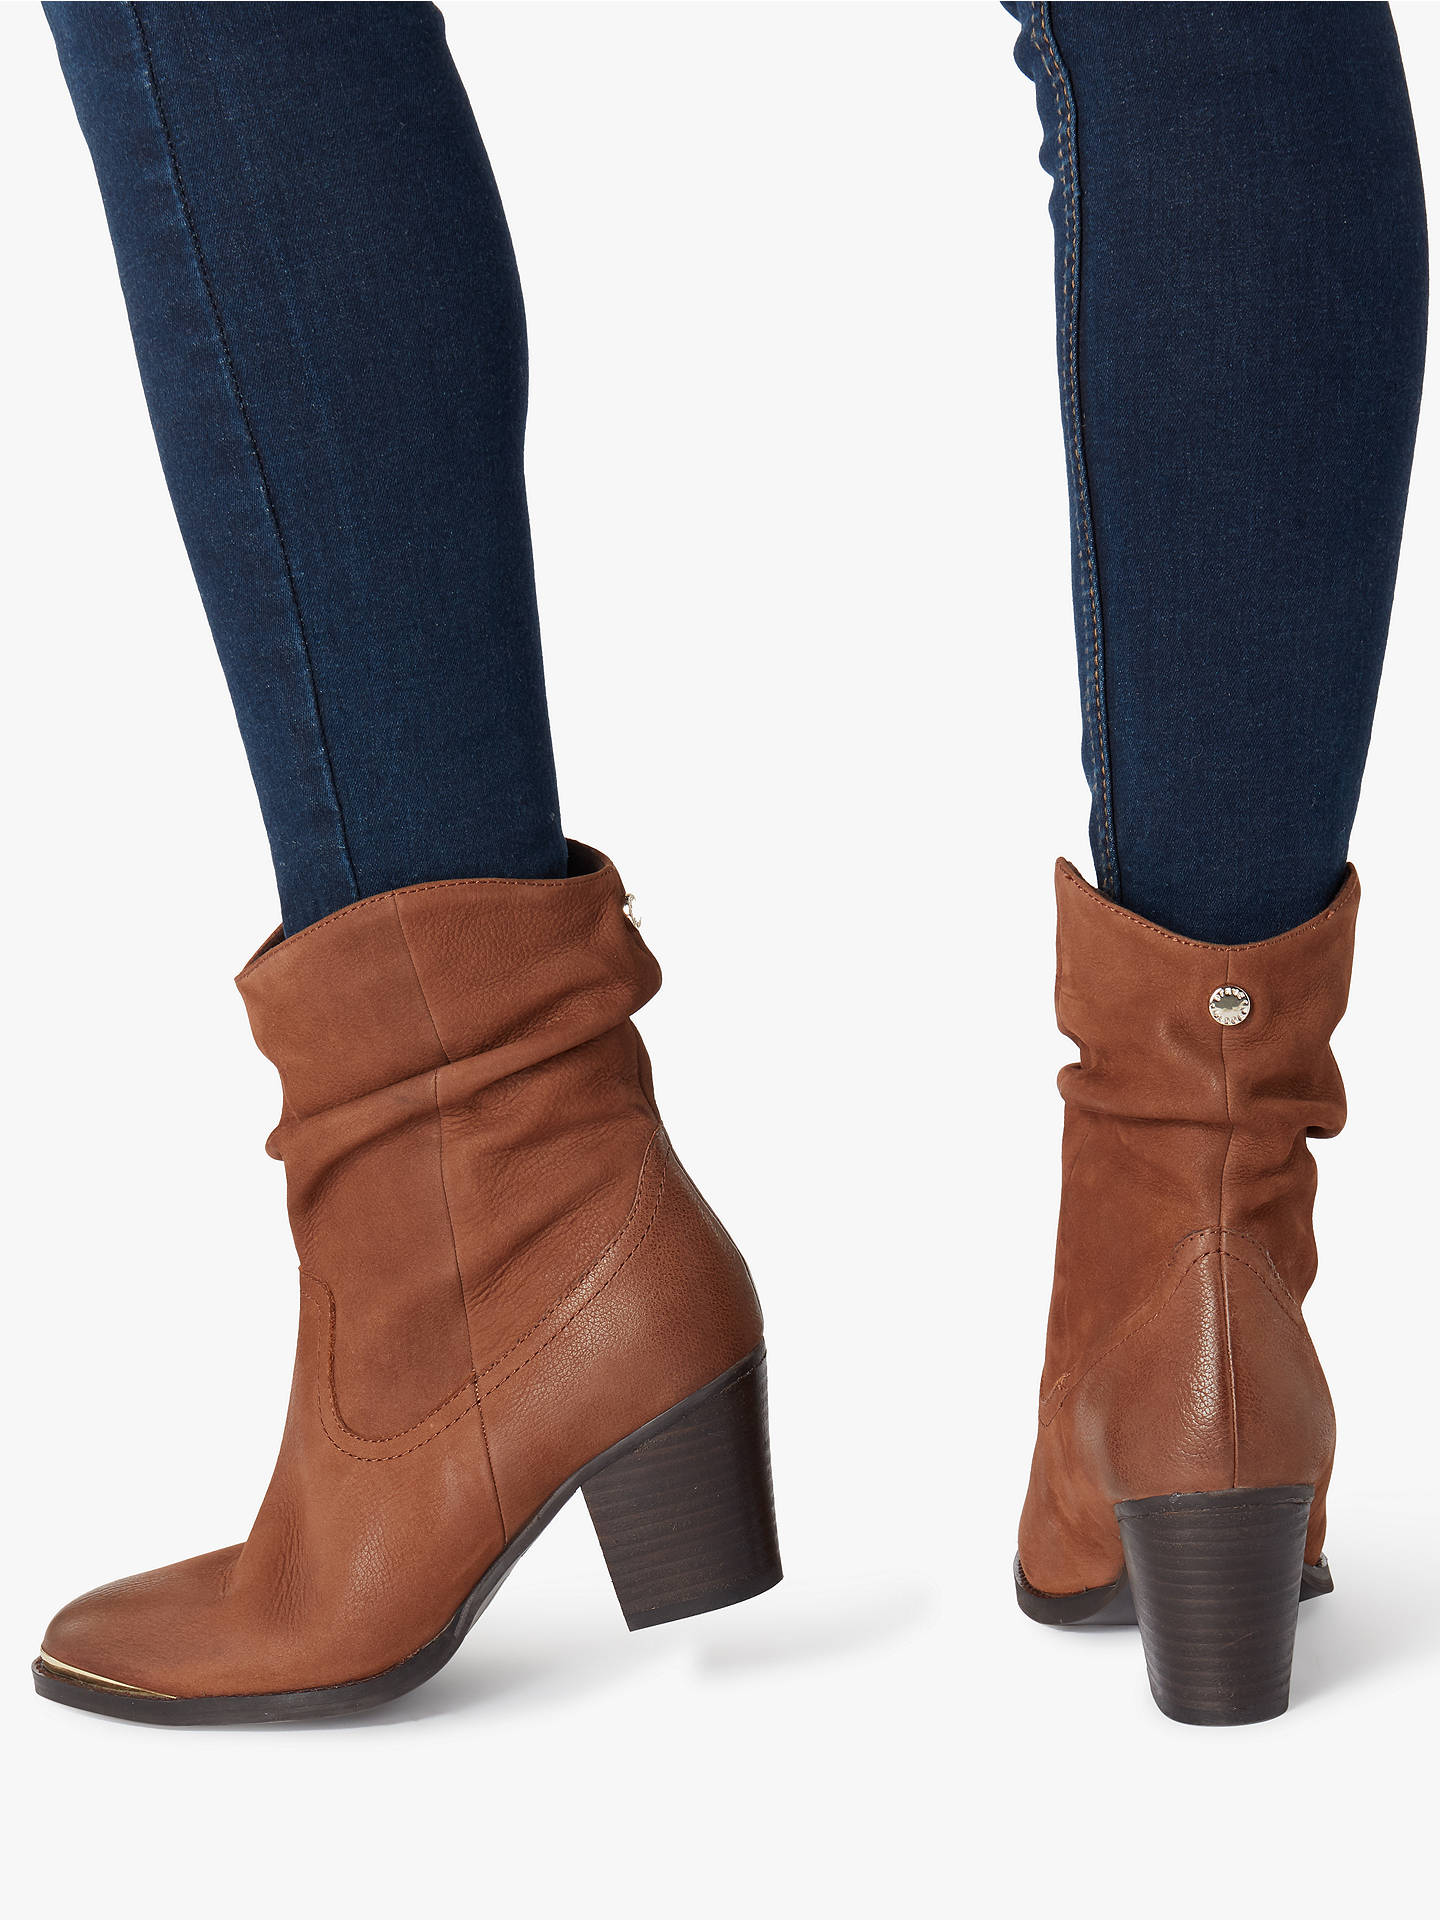 BuySteve Madden Olya Leather Ruched Heeled Boots, Chesnut, 7 Online at johnlewis.com